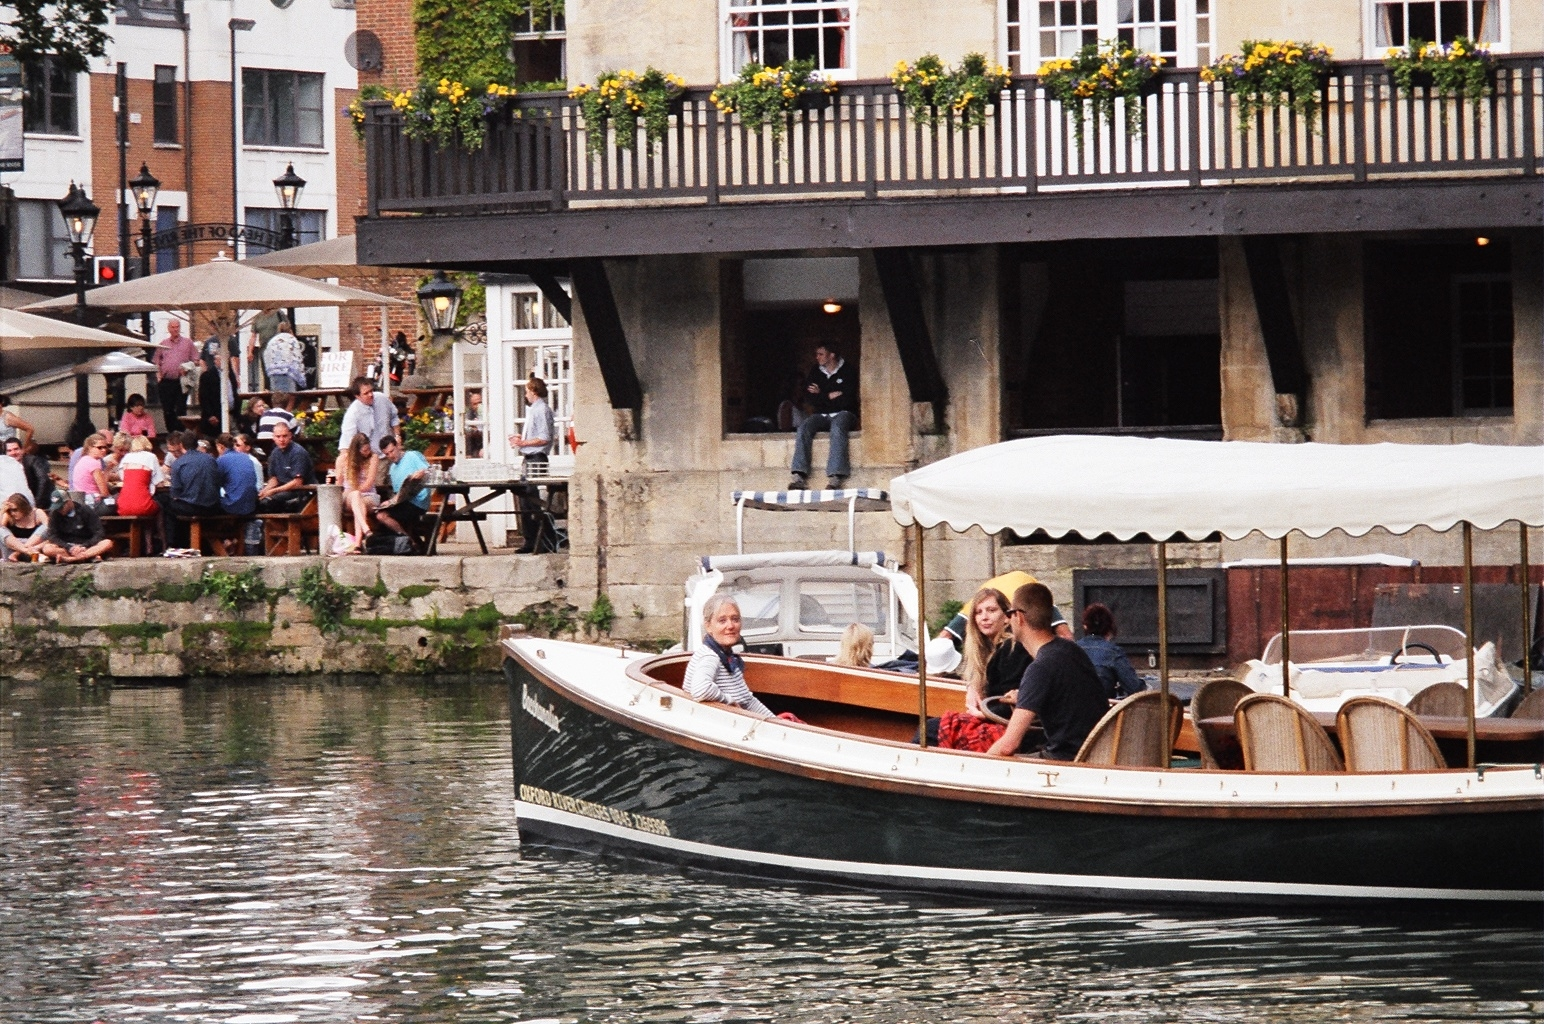 Boats trips in central Oxford